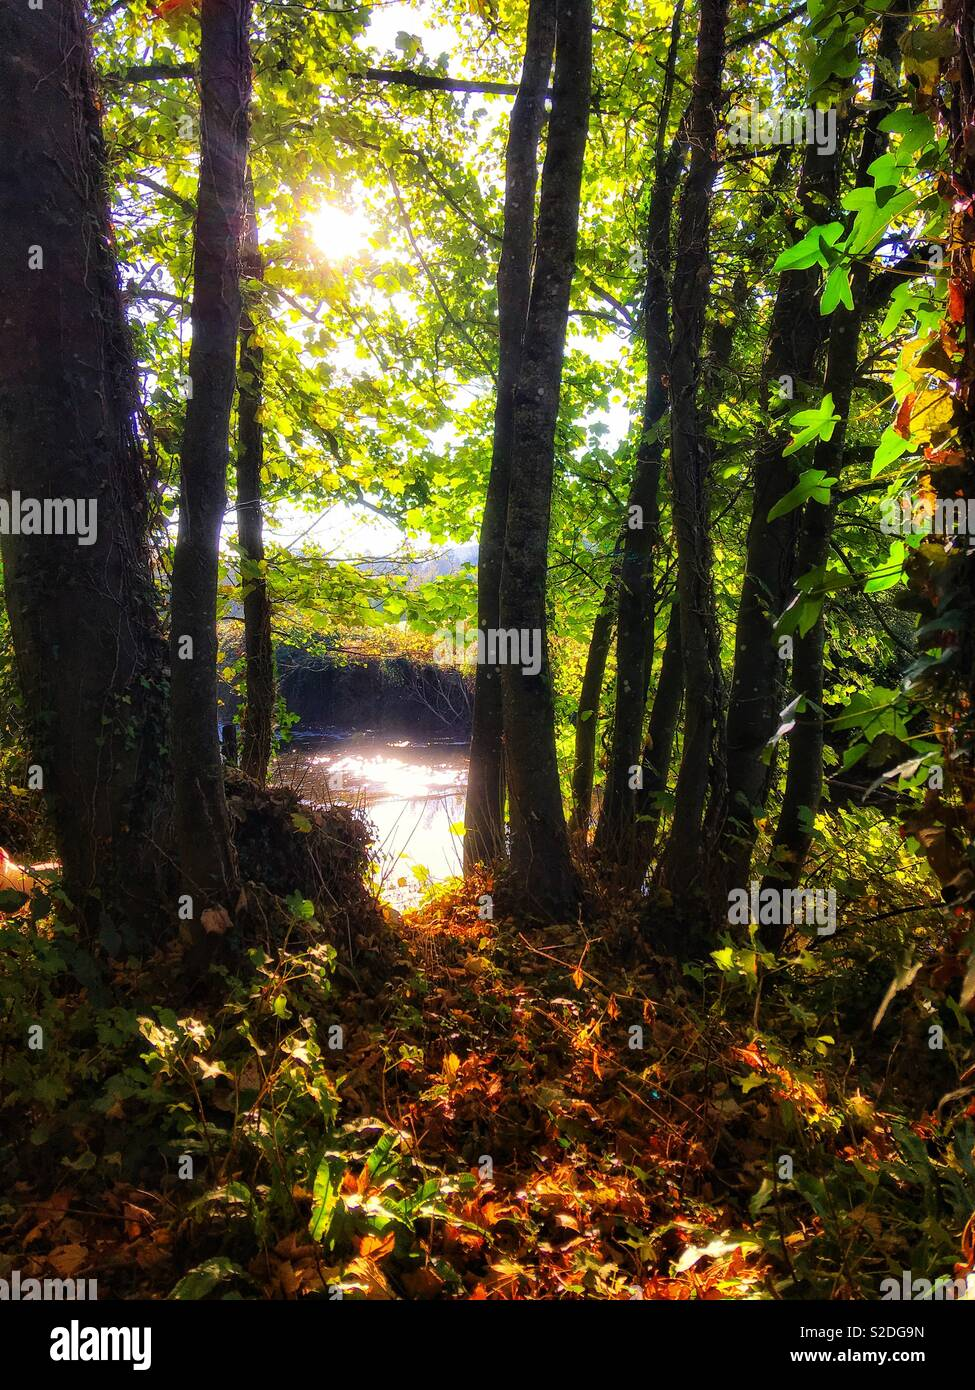 Soft focus image looking through Autumn trees to a sparkling river - Stock Image